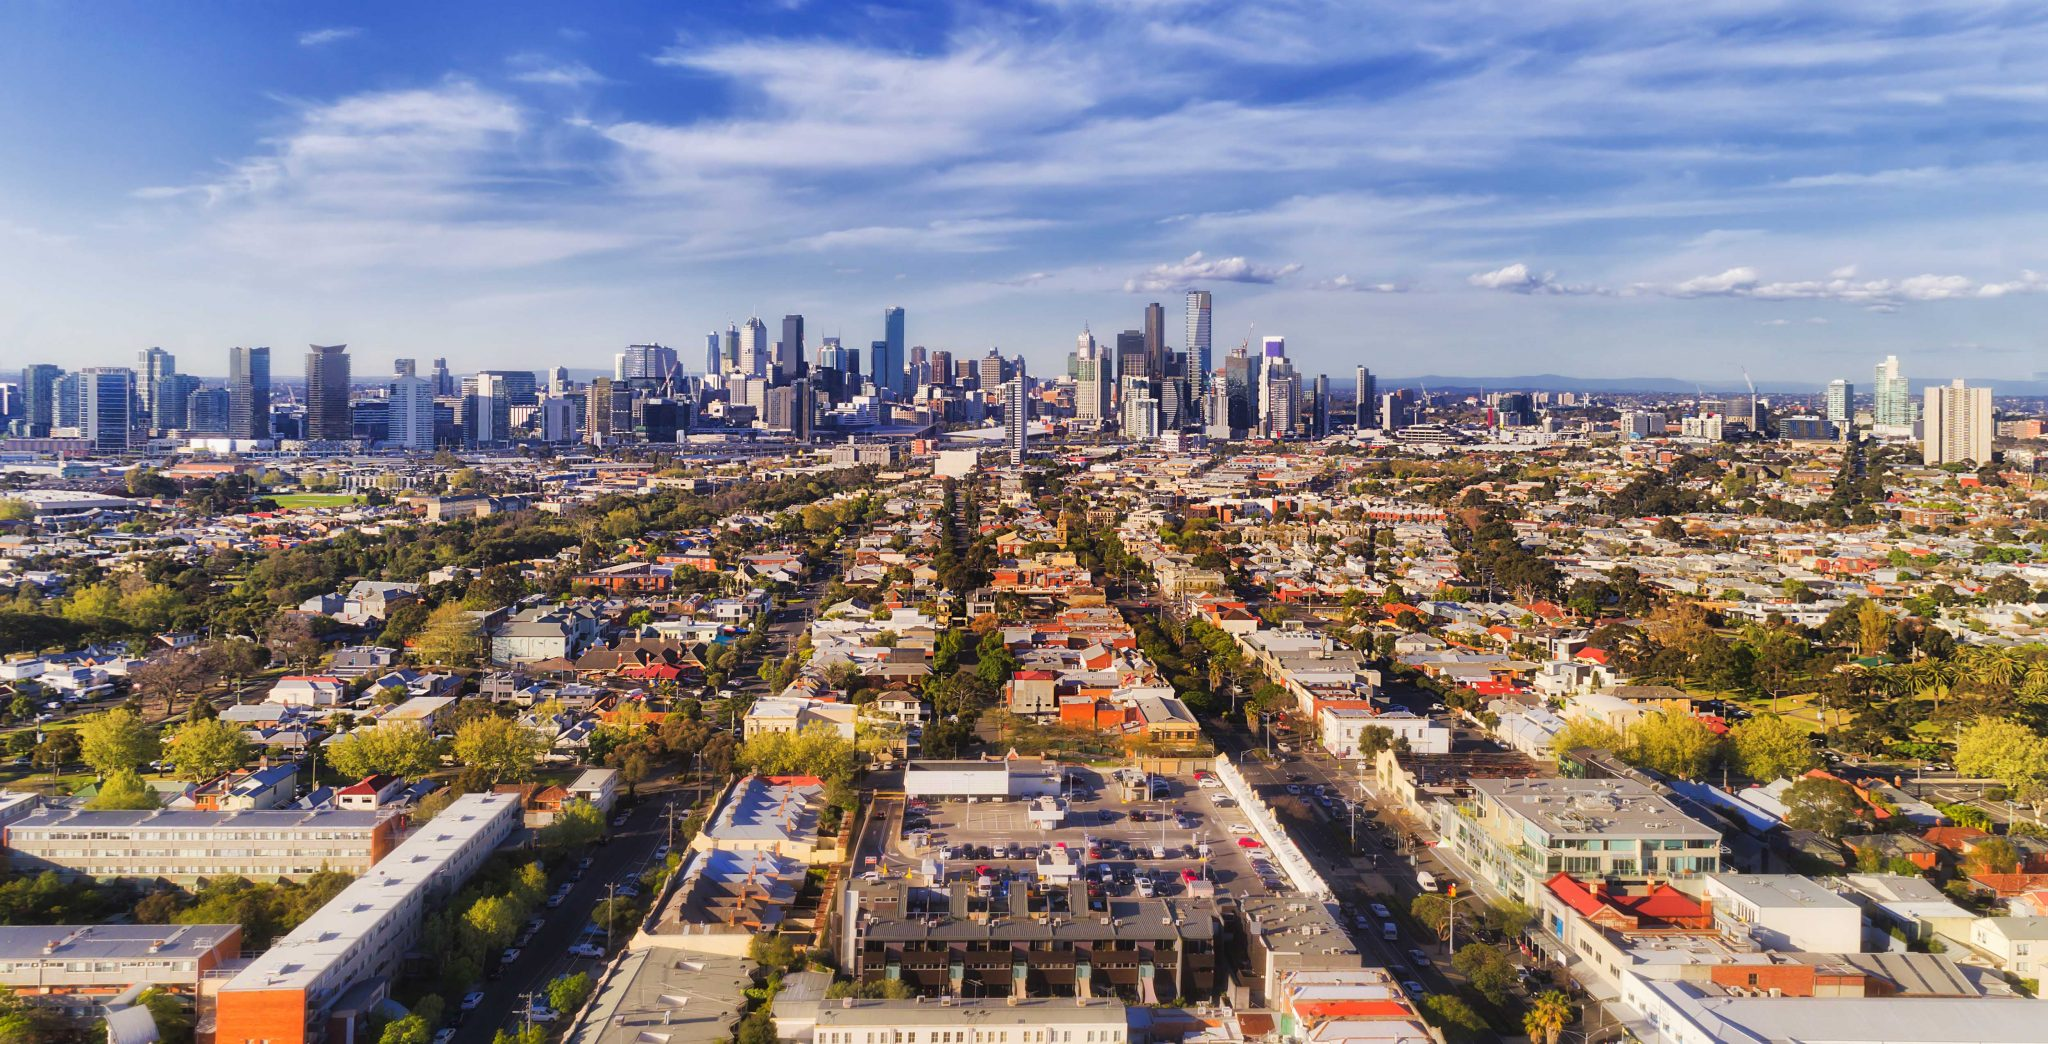 Investors 'listen in' as population boom drives demand and investment opportunities in Melbourne